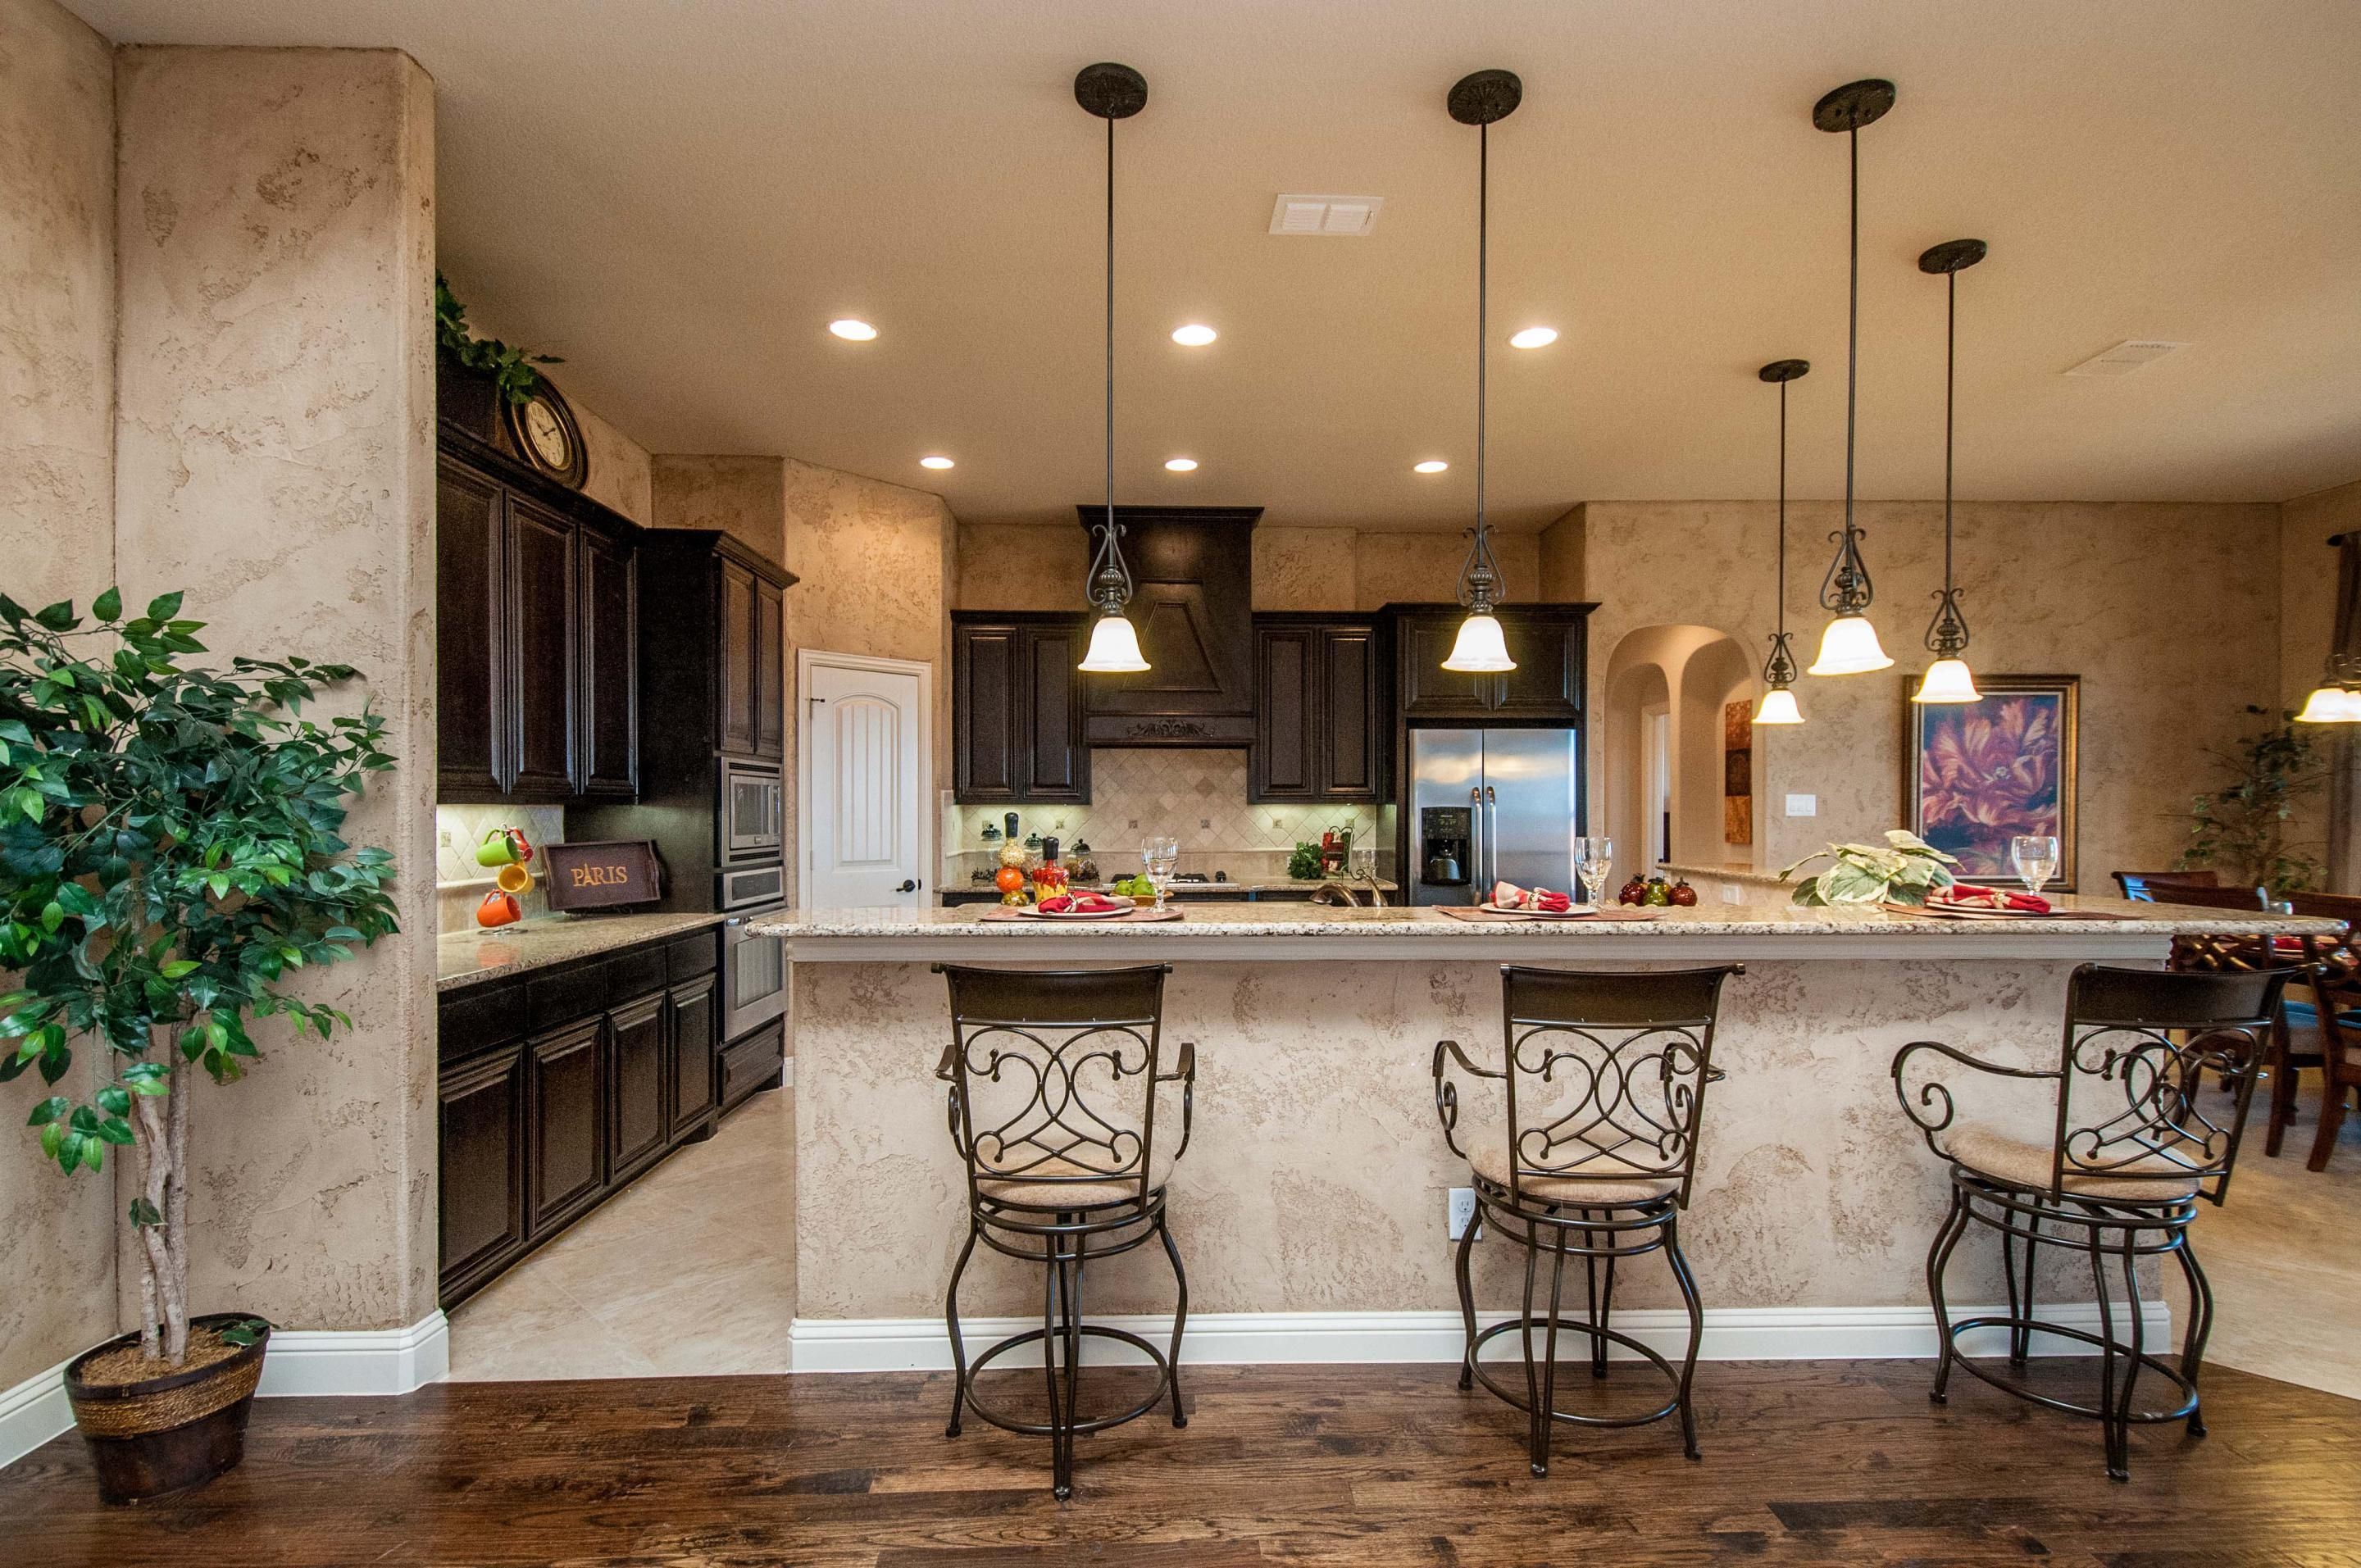 Dark Accents In A Gleaming Wood Floor Complement The Cabinetry And Colors Throughout This Kitchen New Homes From Lillian Custom Near Dallas Ovilla